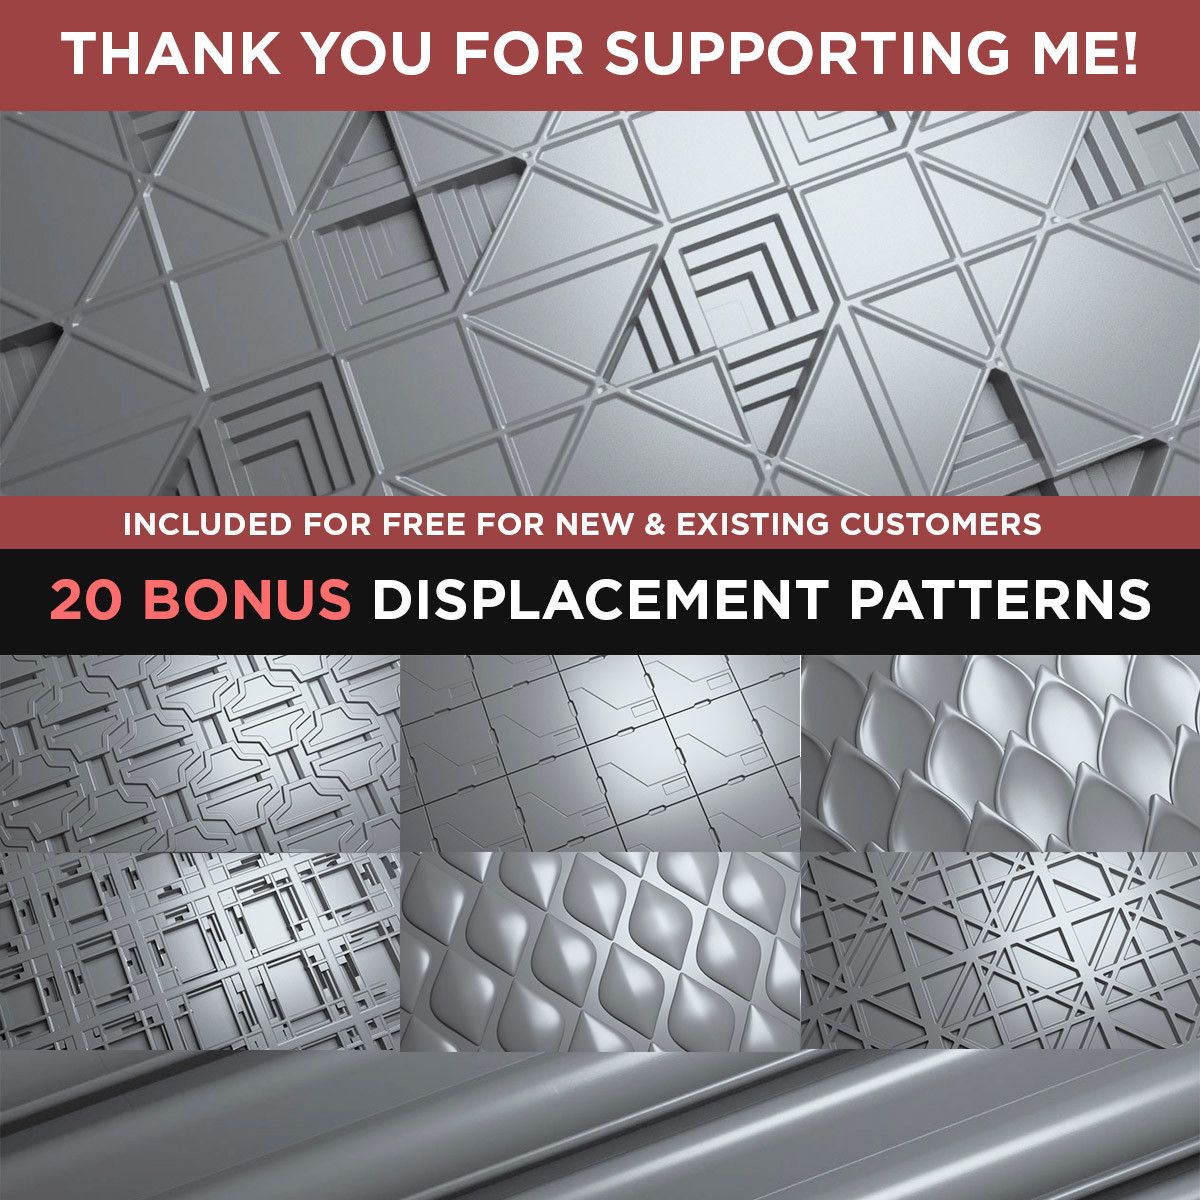 20 BONUS DISPLACEMENT PATTERNS + A BONUS TUTORIAL AVAILABLE FOR EVERYONE THAT OWNS THE COMPLETE PACK. That brings the grand total to 145.